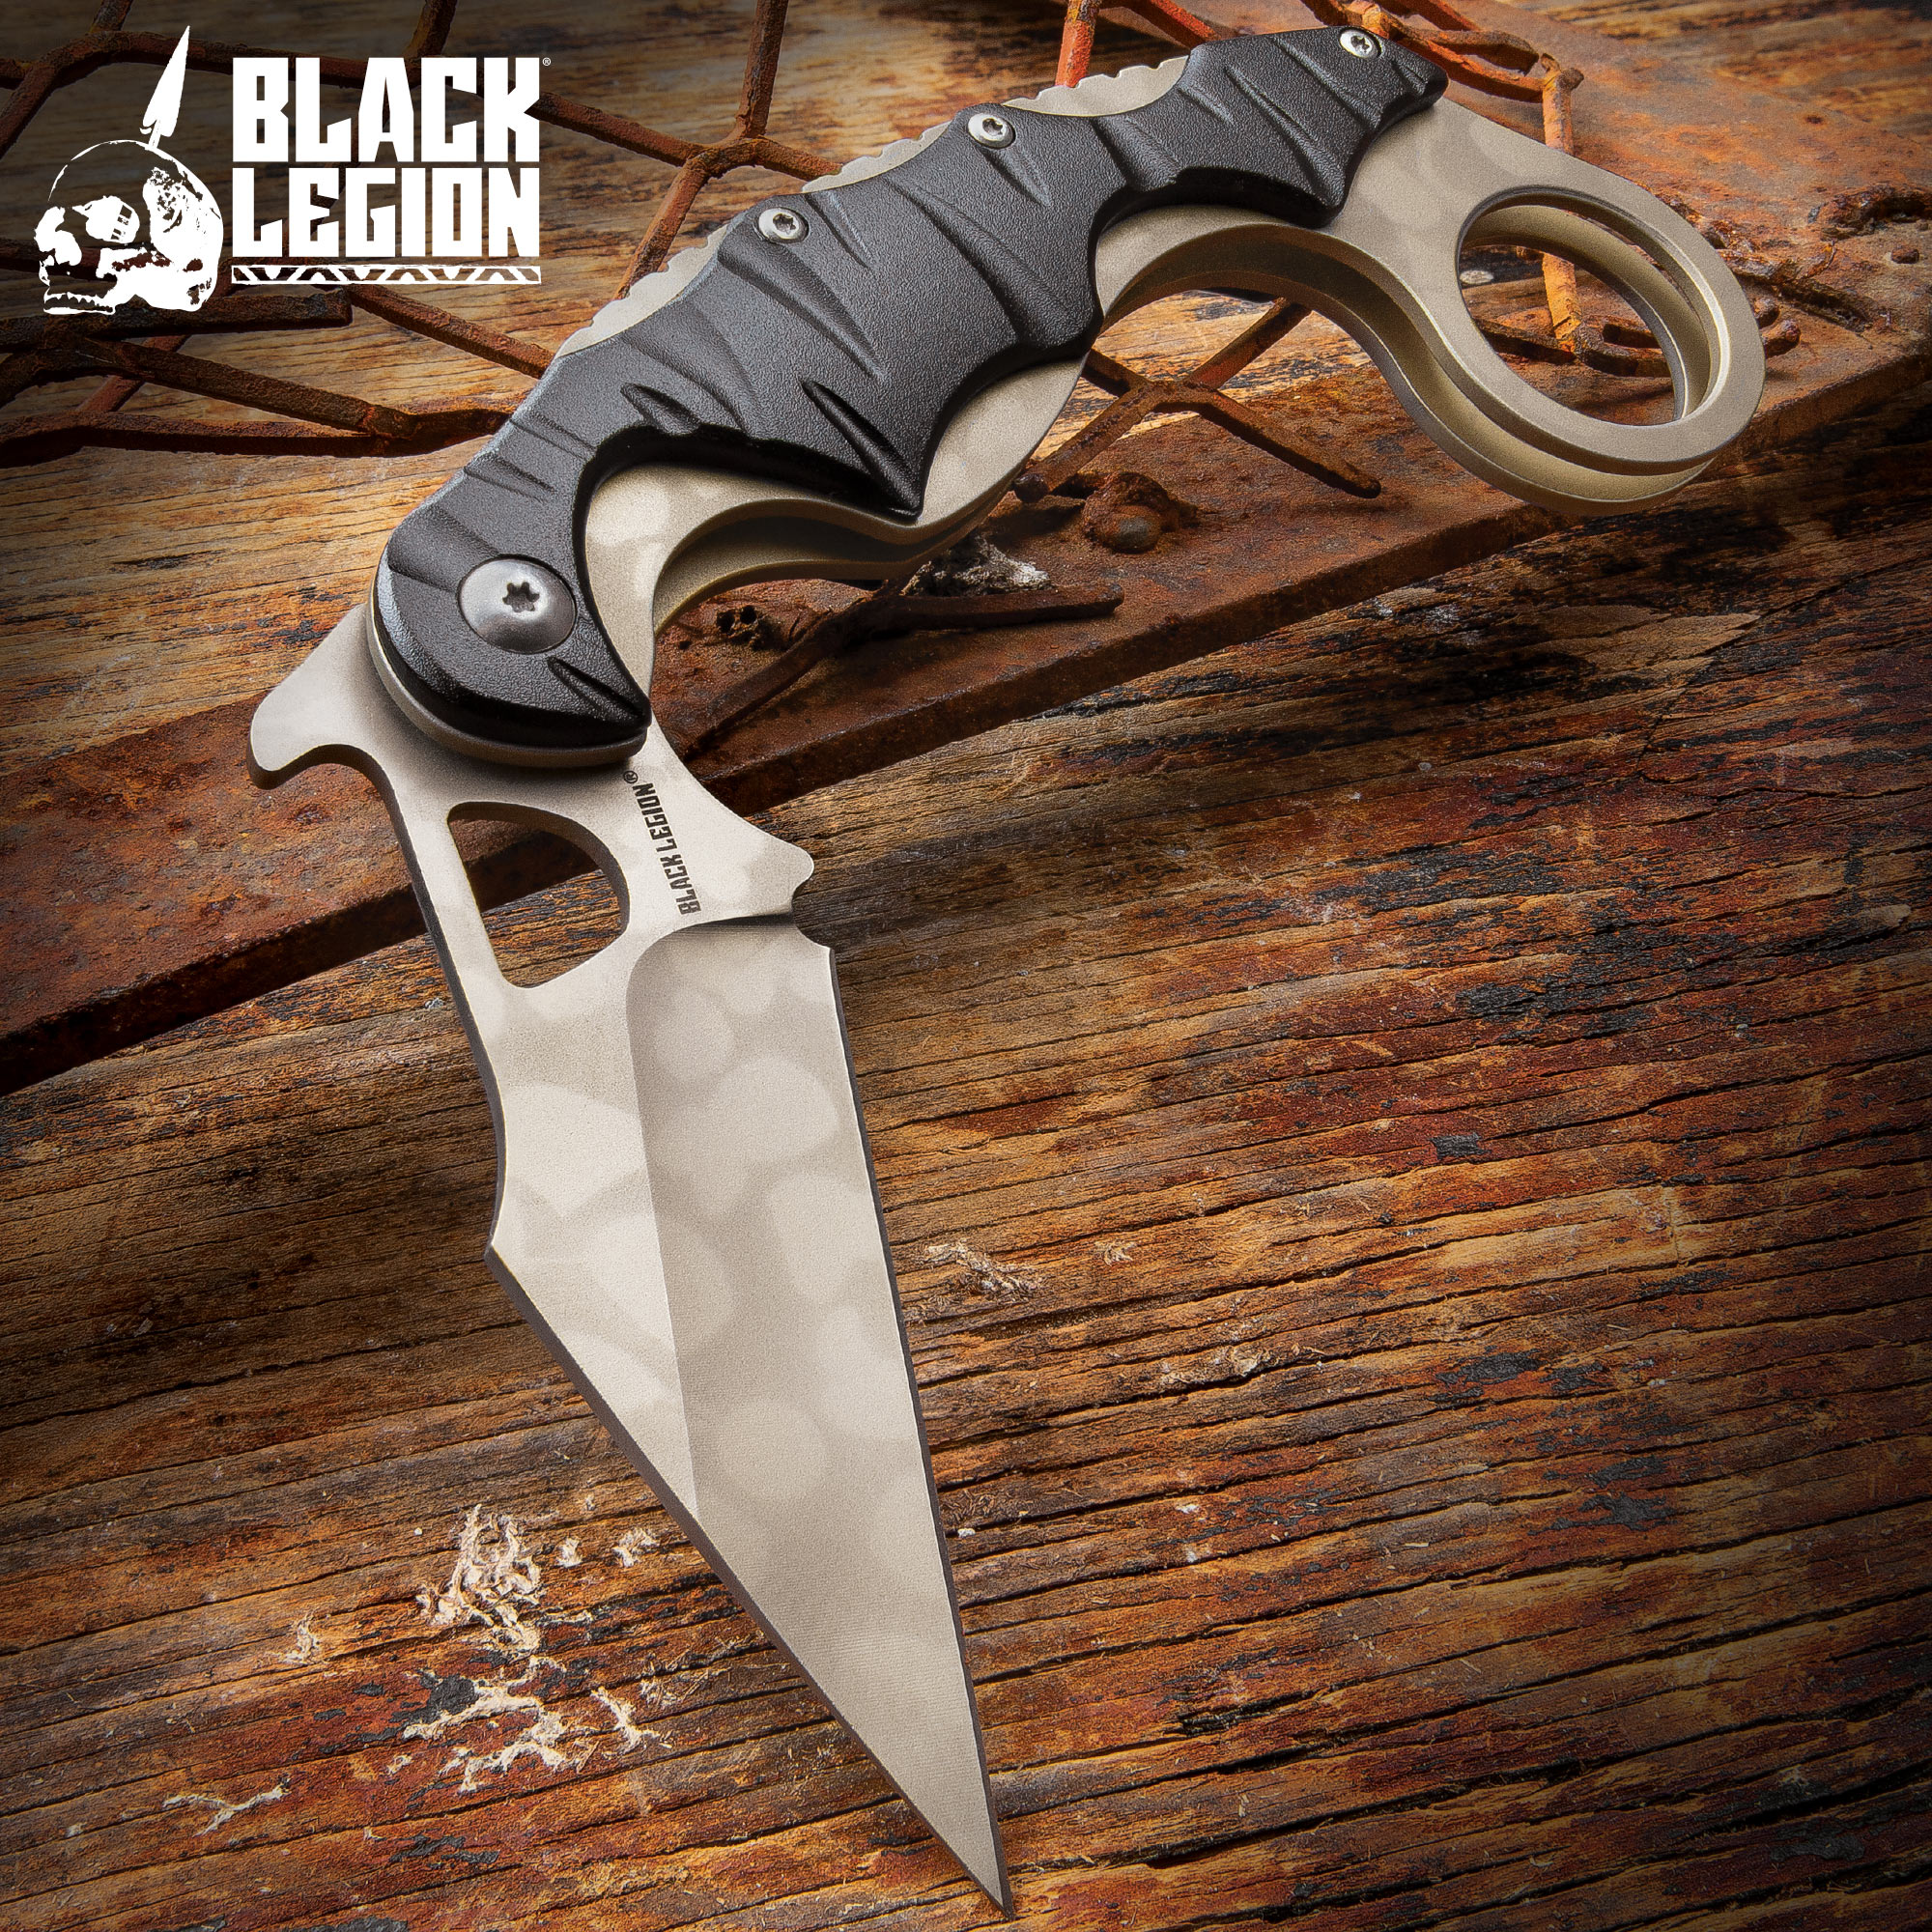 Black Legion Camouflage Folding Karambit | BUDK.com - Knives & Swords At The Lowest Prices!